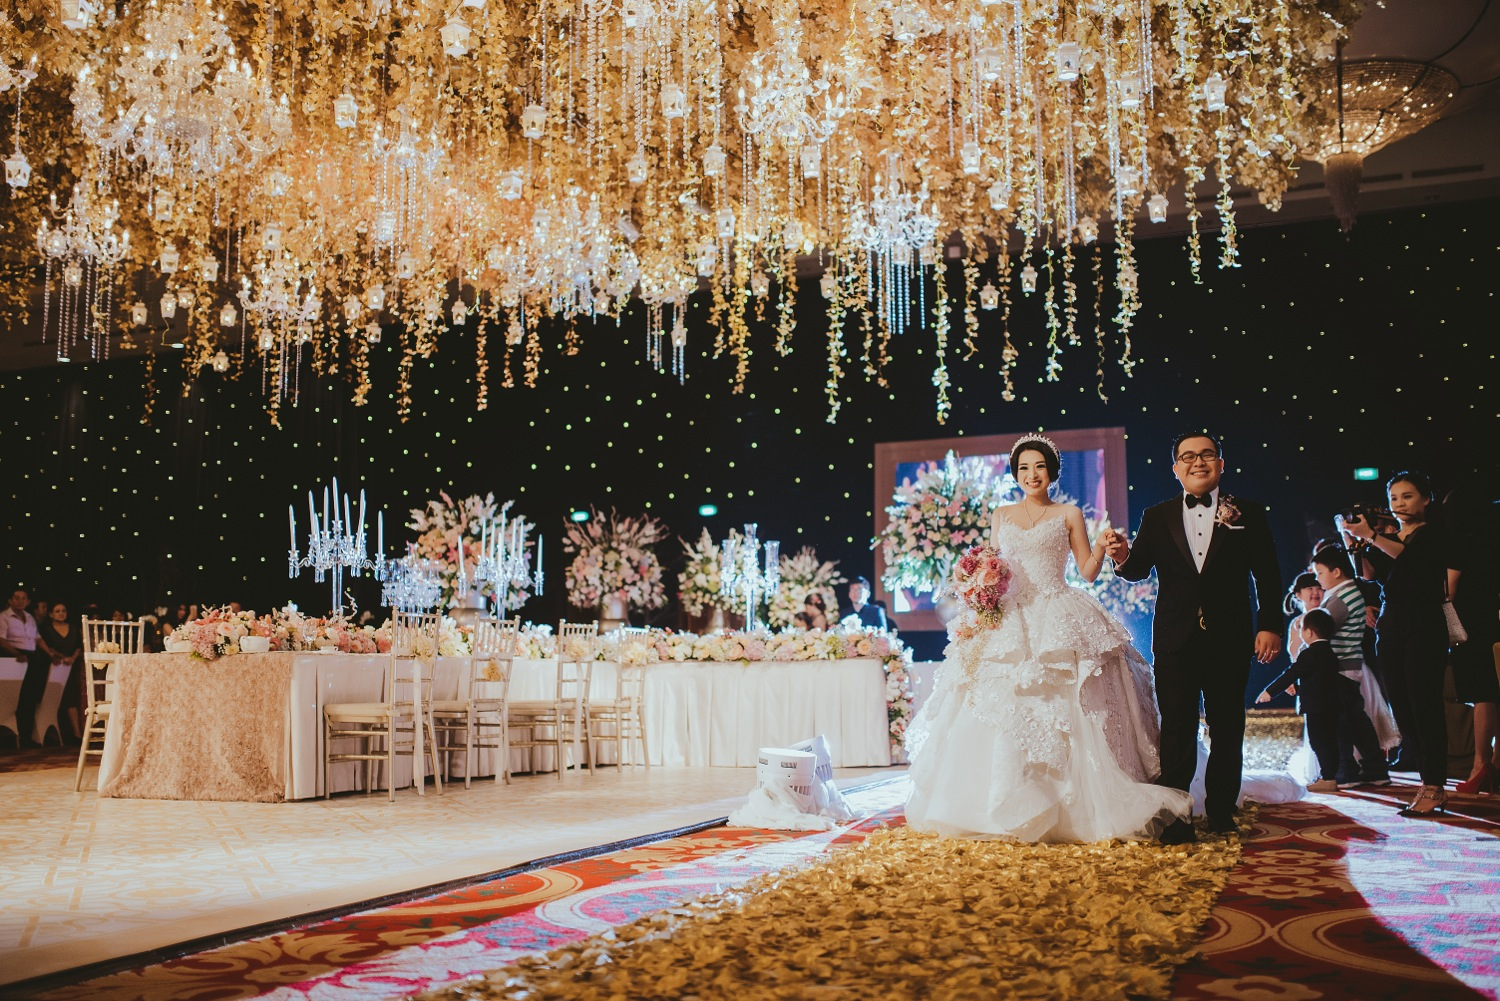 Lotus design wedding decoration lighting in bandung bridestory junglespirit Image collections